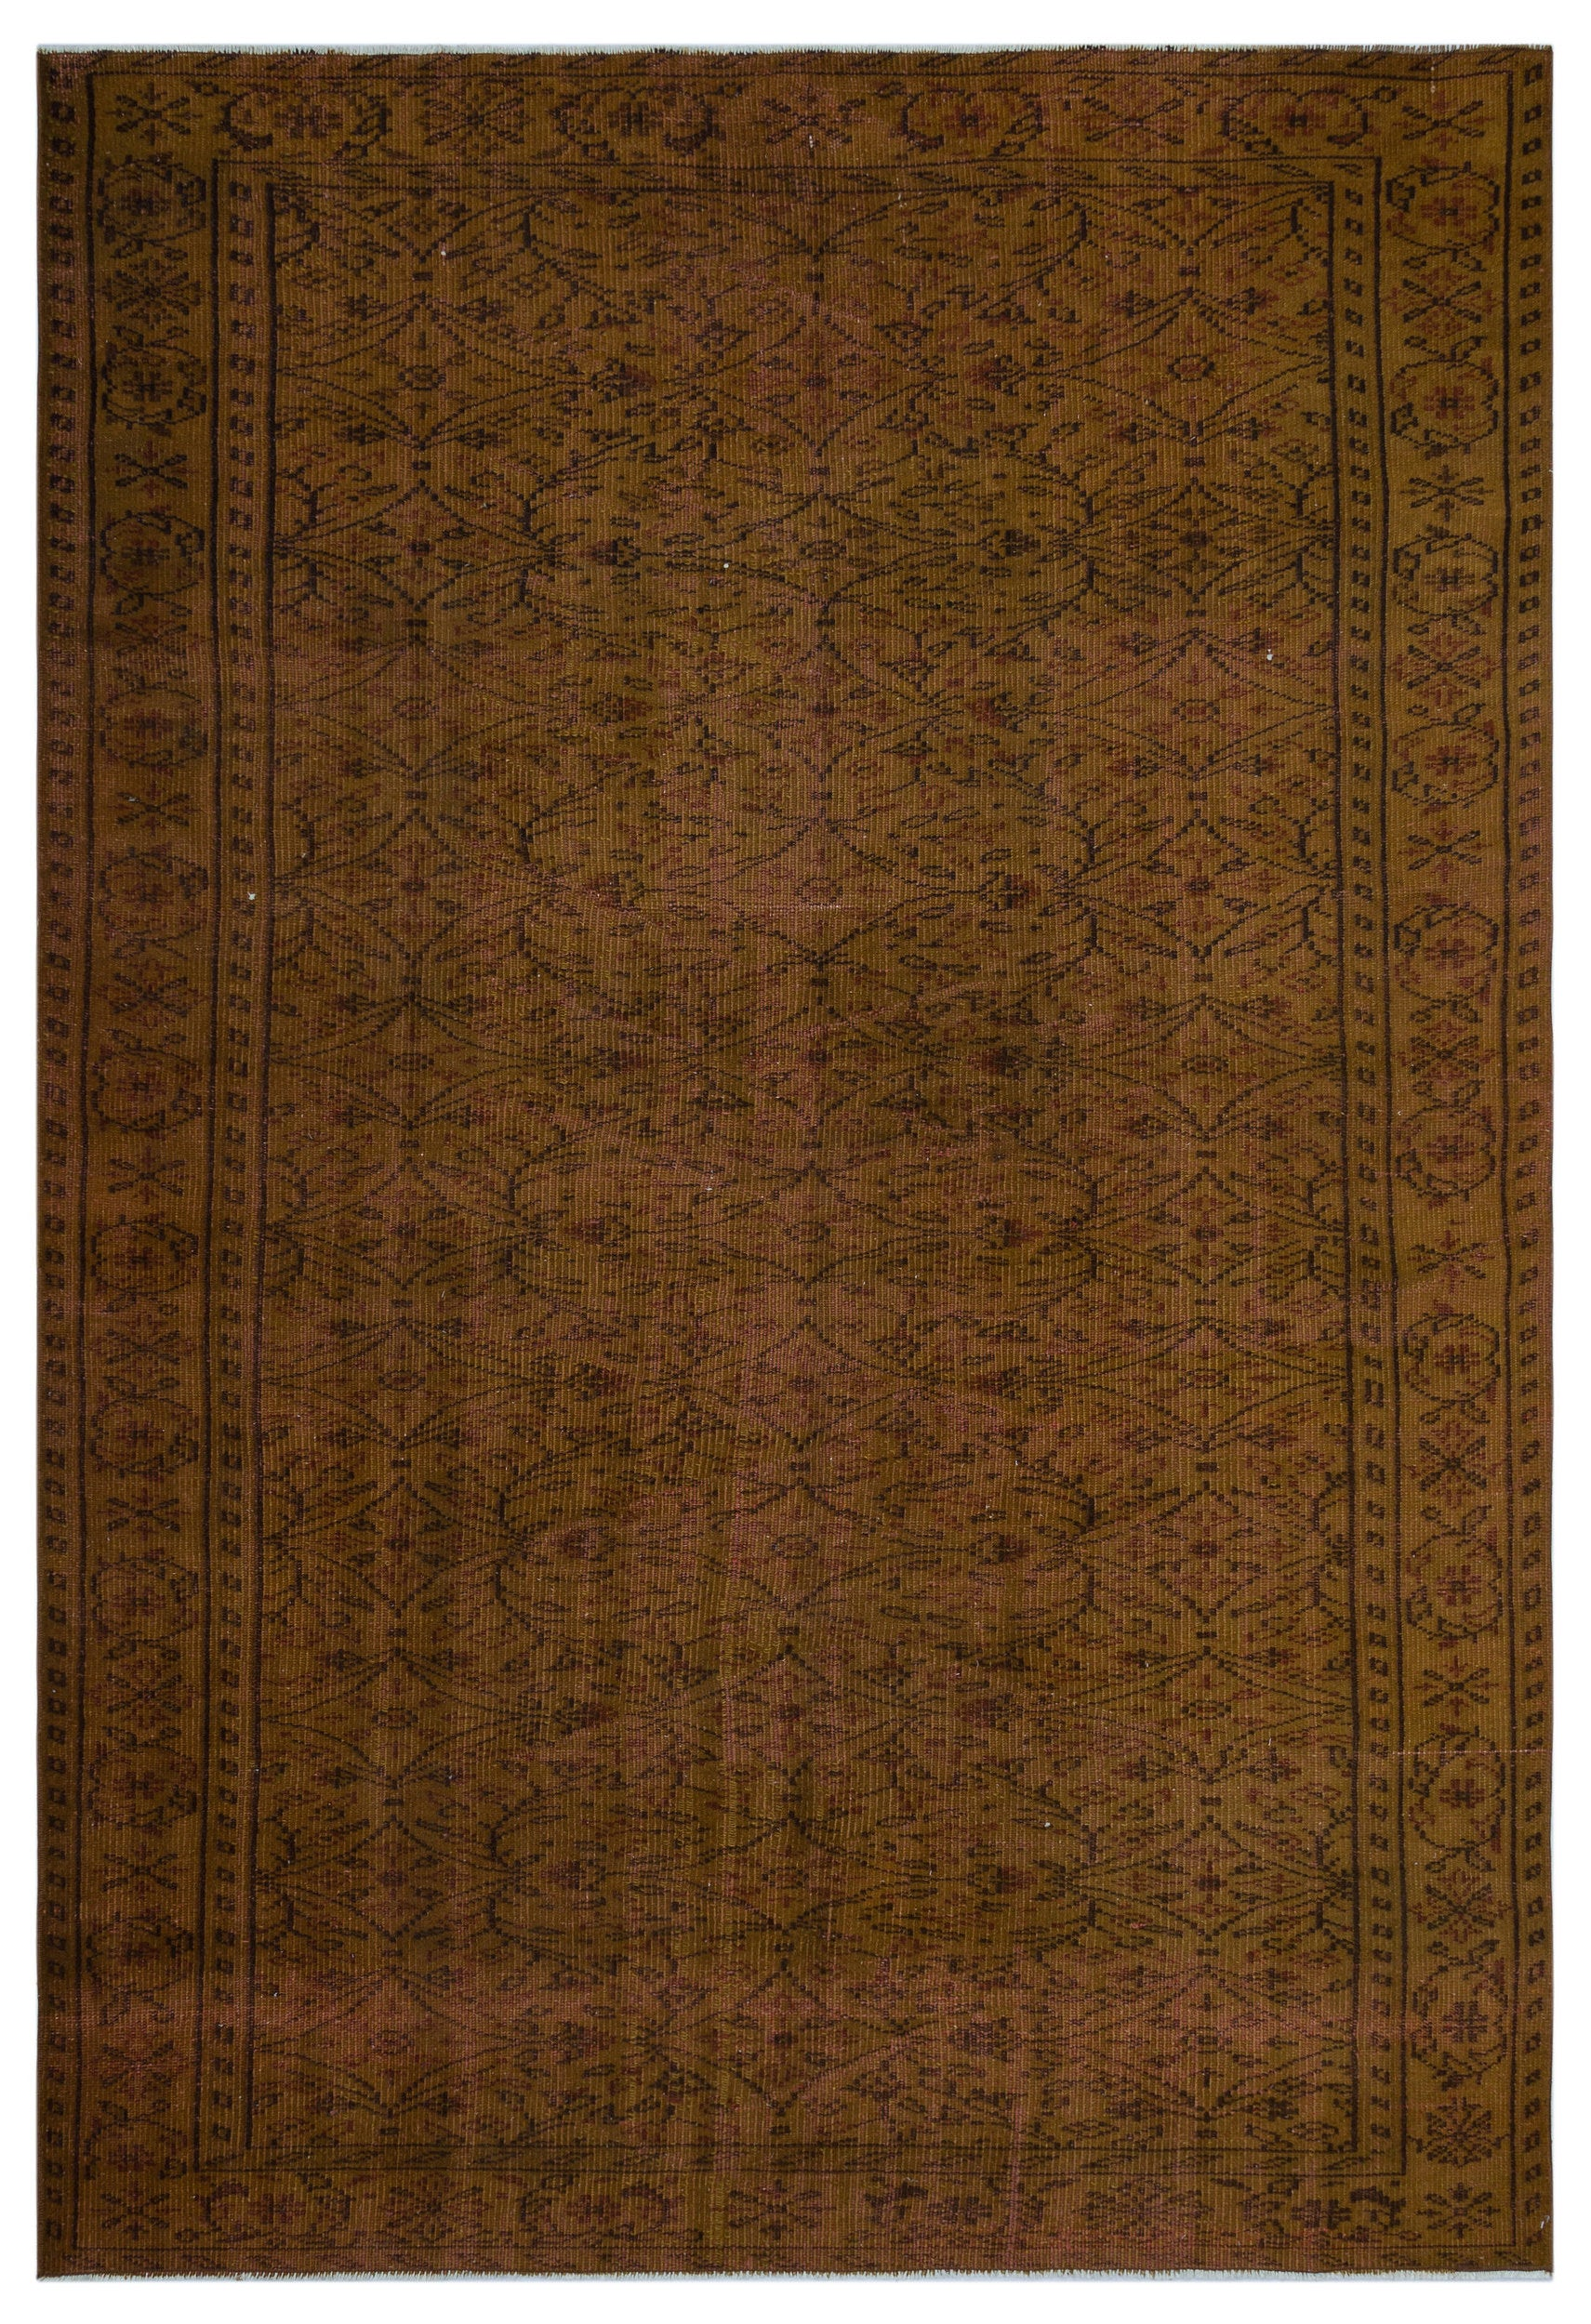 Brown Over Dyed Vintage Rug 6'0'' x 8'11'' ft 184 x 272 cm